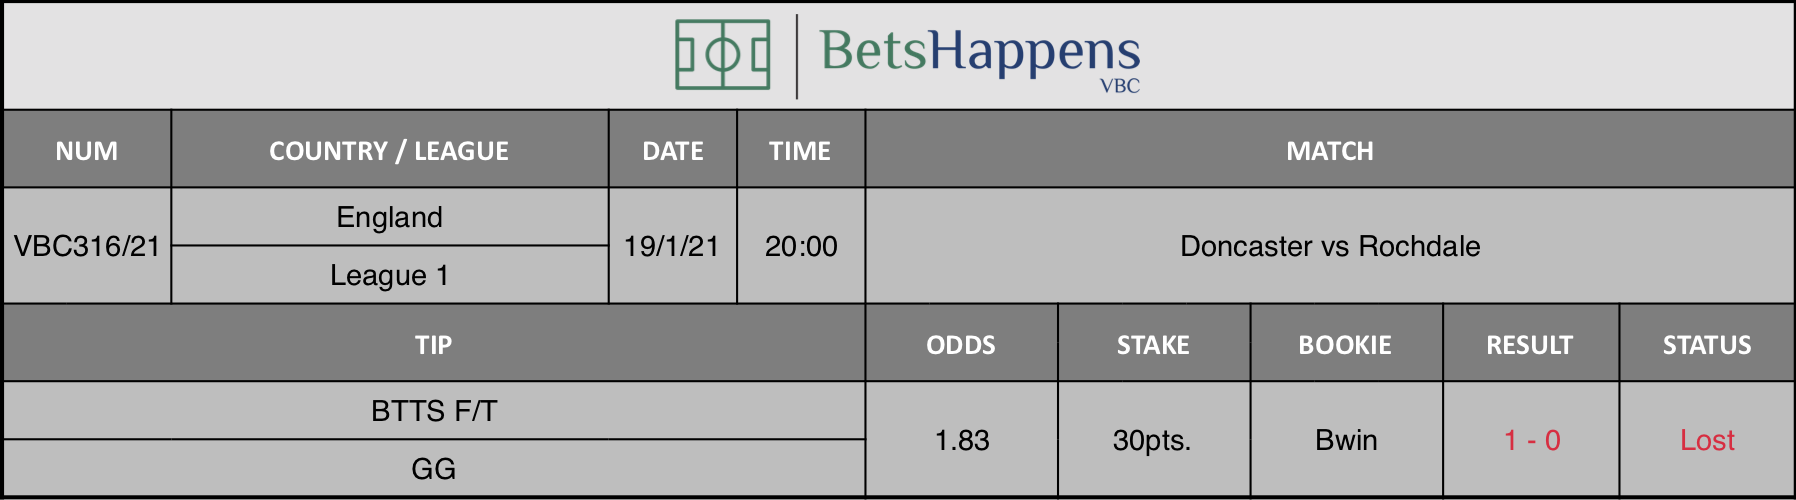 Results of our tip for the Doncaster vs Rochdale match where BTTS F/T  GG is recommended.